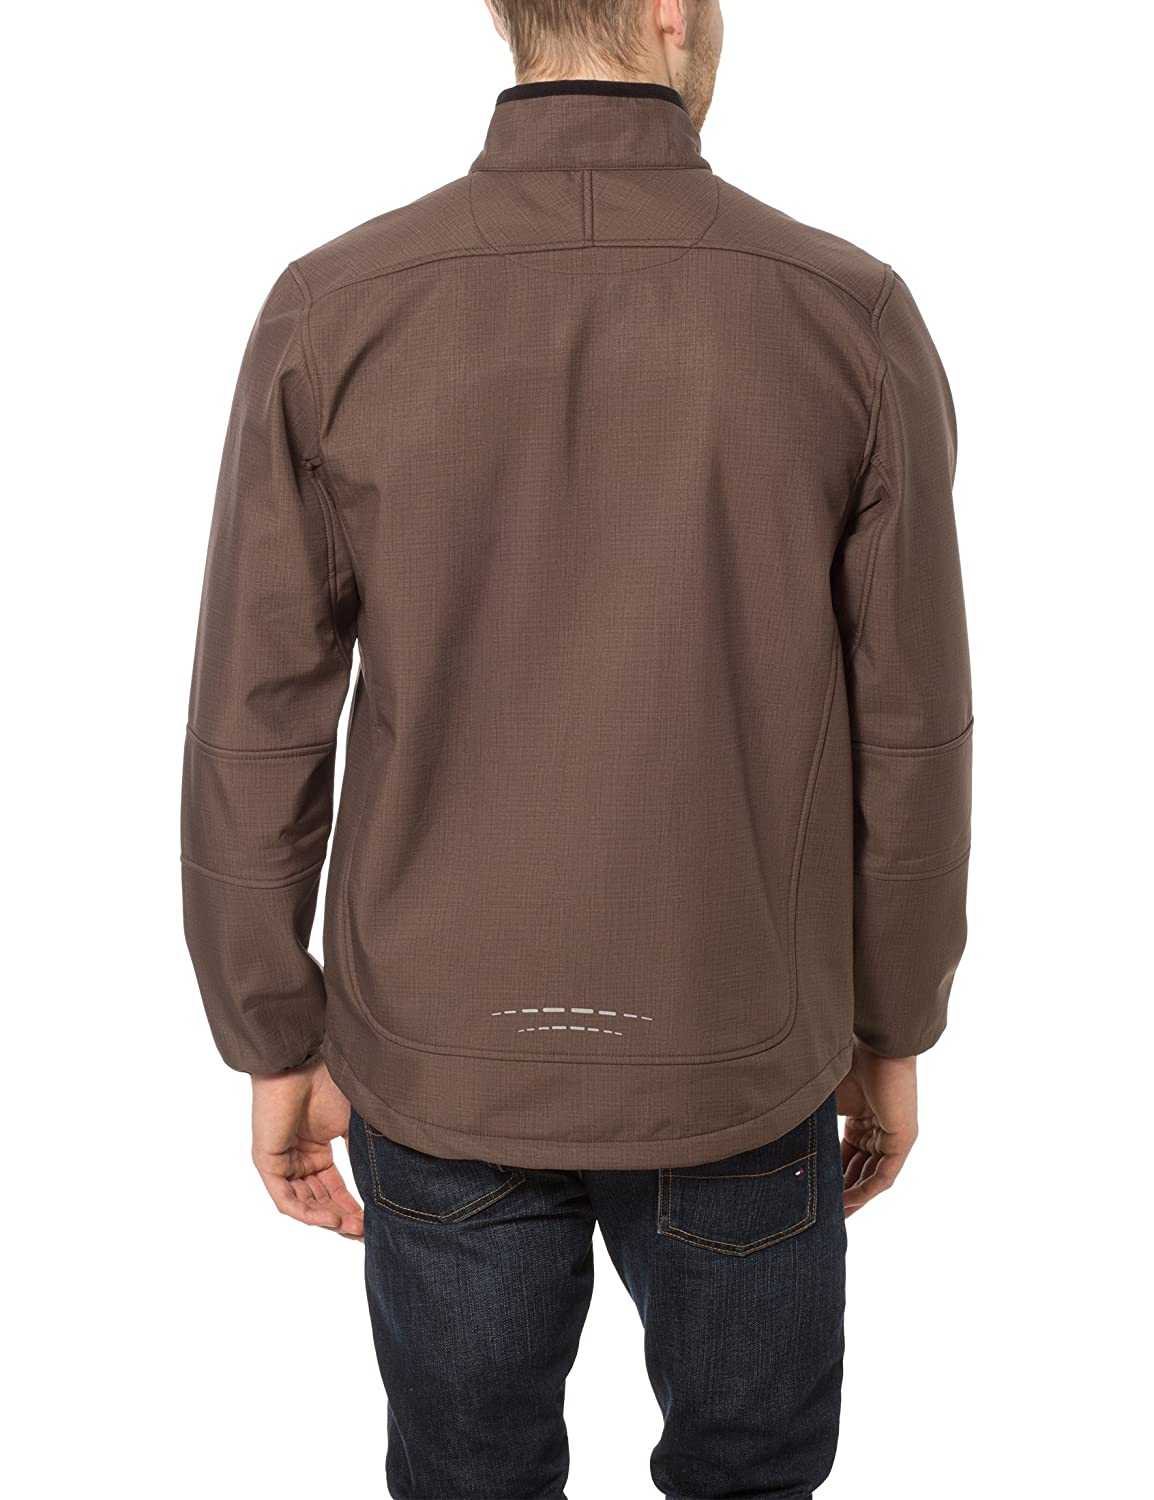 Ultrasport Stan - Chaqueta para hombre,, color XXL marrón, talla XXL color 85266a